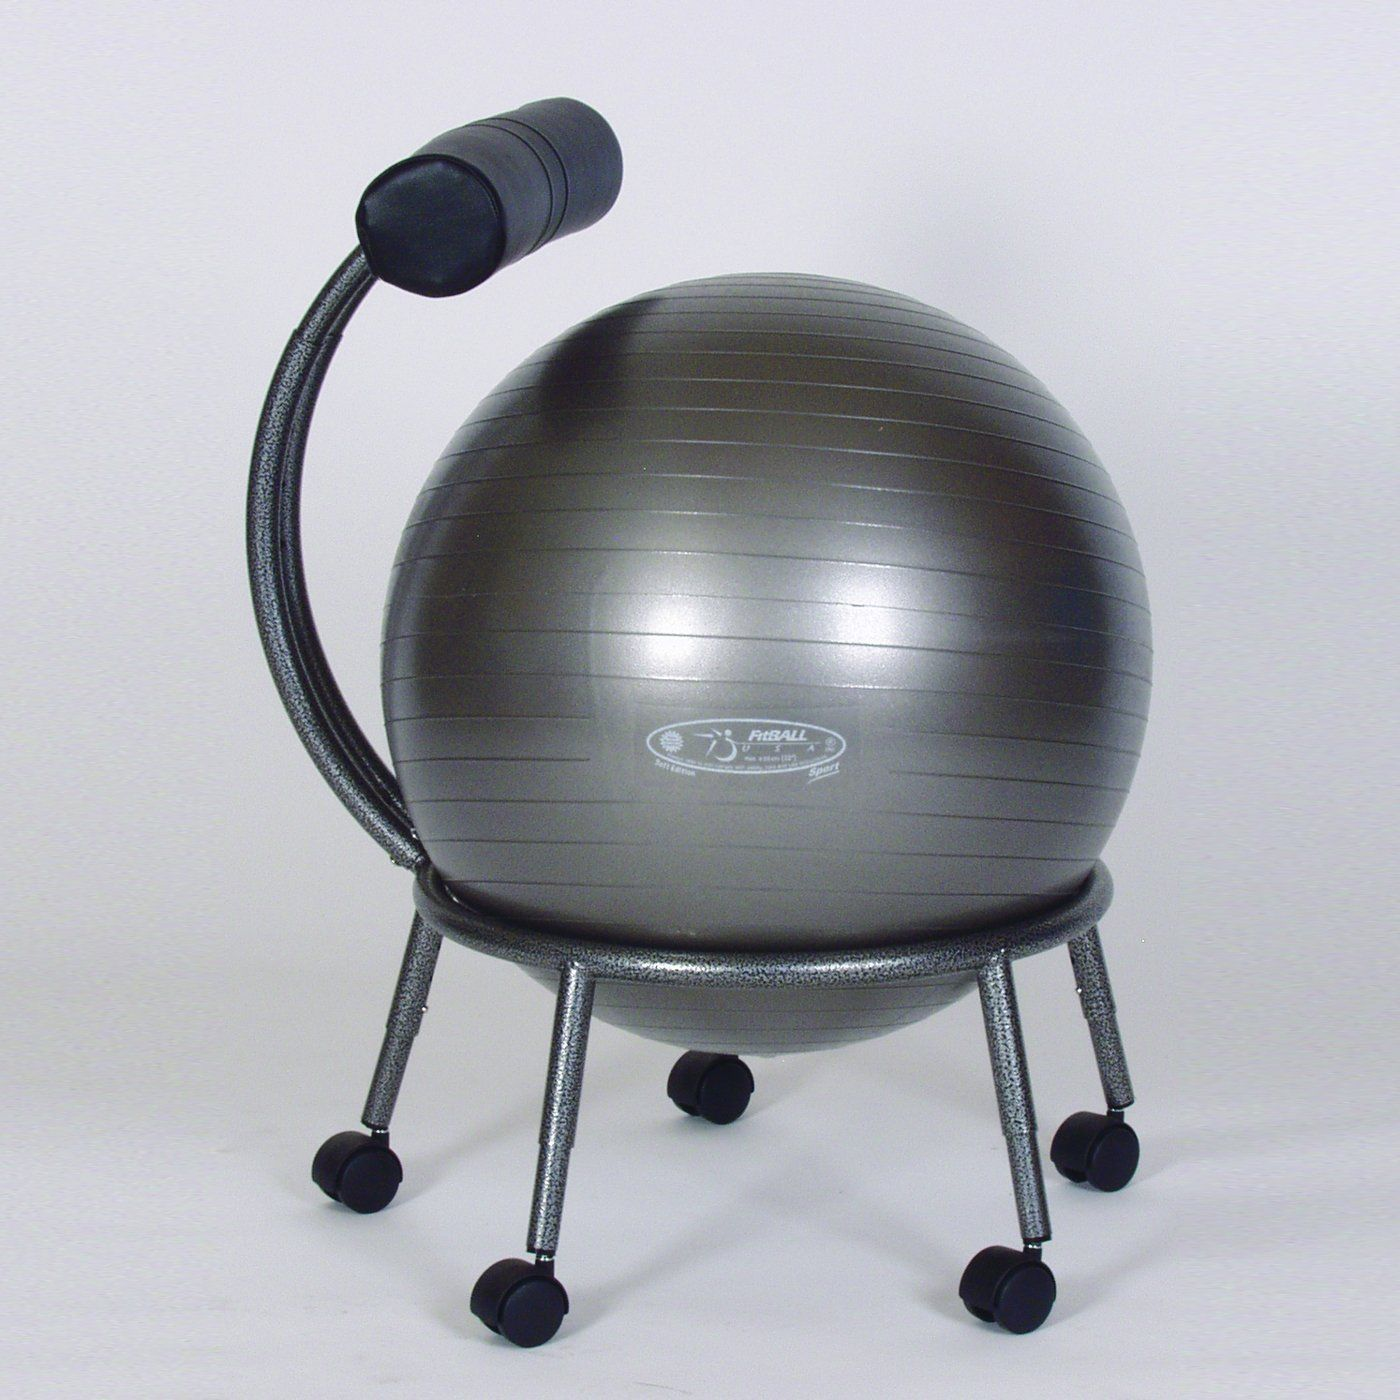 Exercise Ball Desk Chair Fitball Stability Ball Chair Balance Ball Chair I Want This